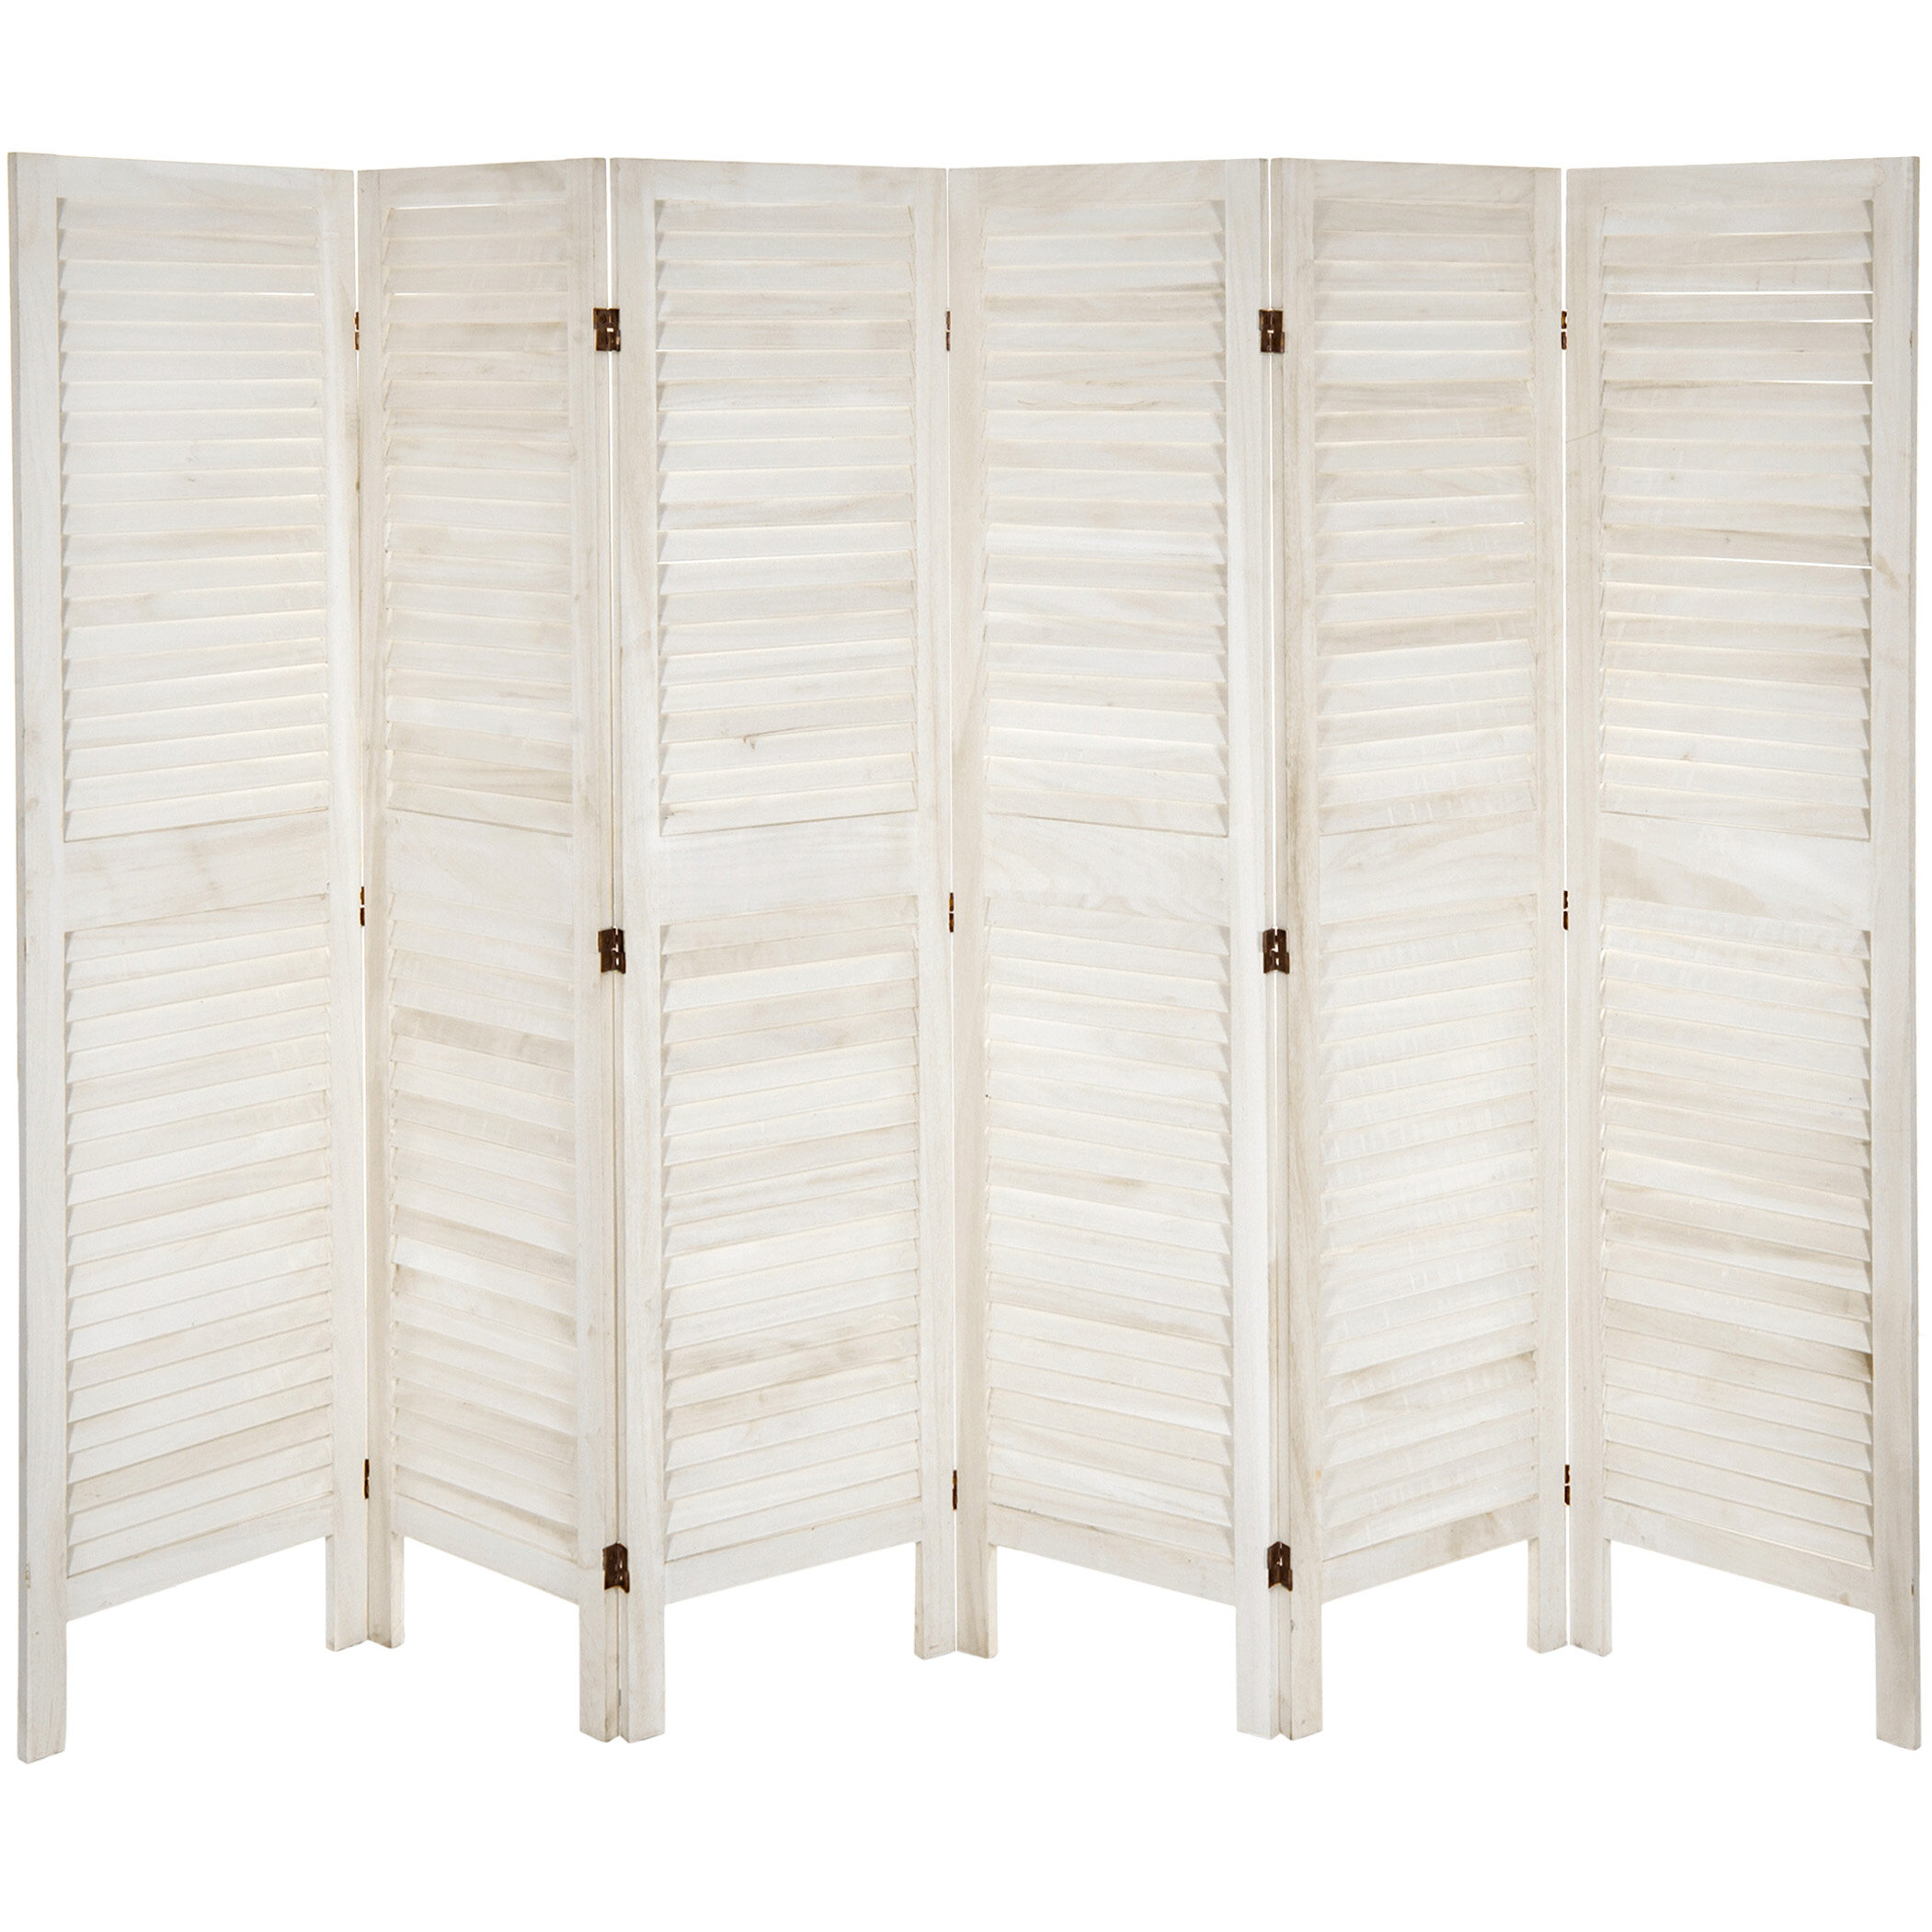 Beachcrest Home Ares 6 Panel Room Divider Reviews Wayfair